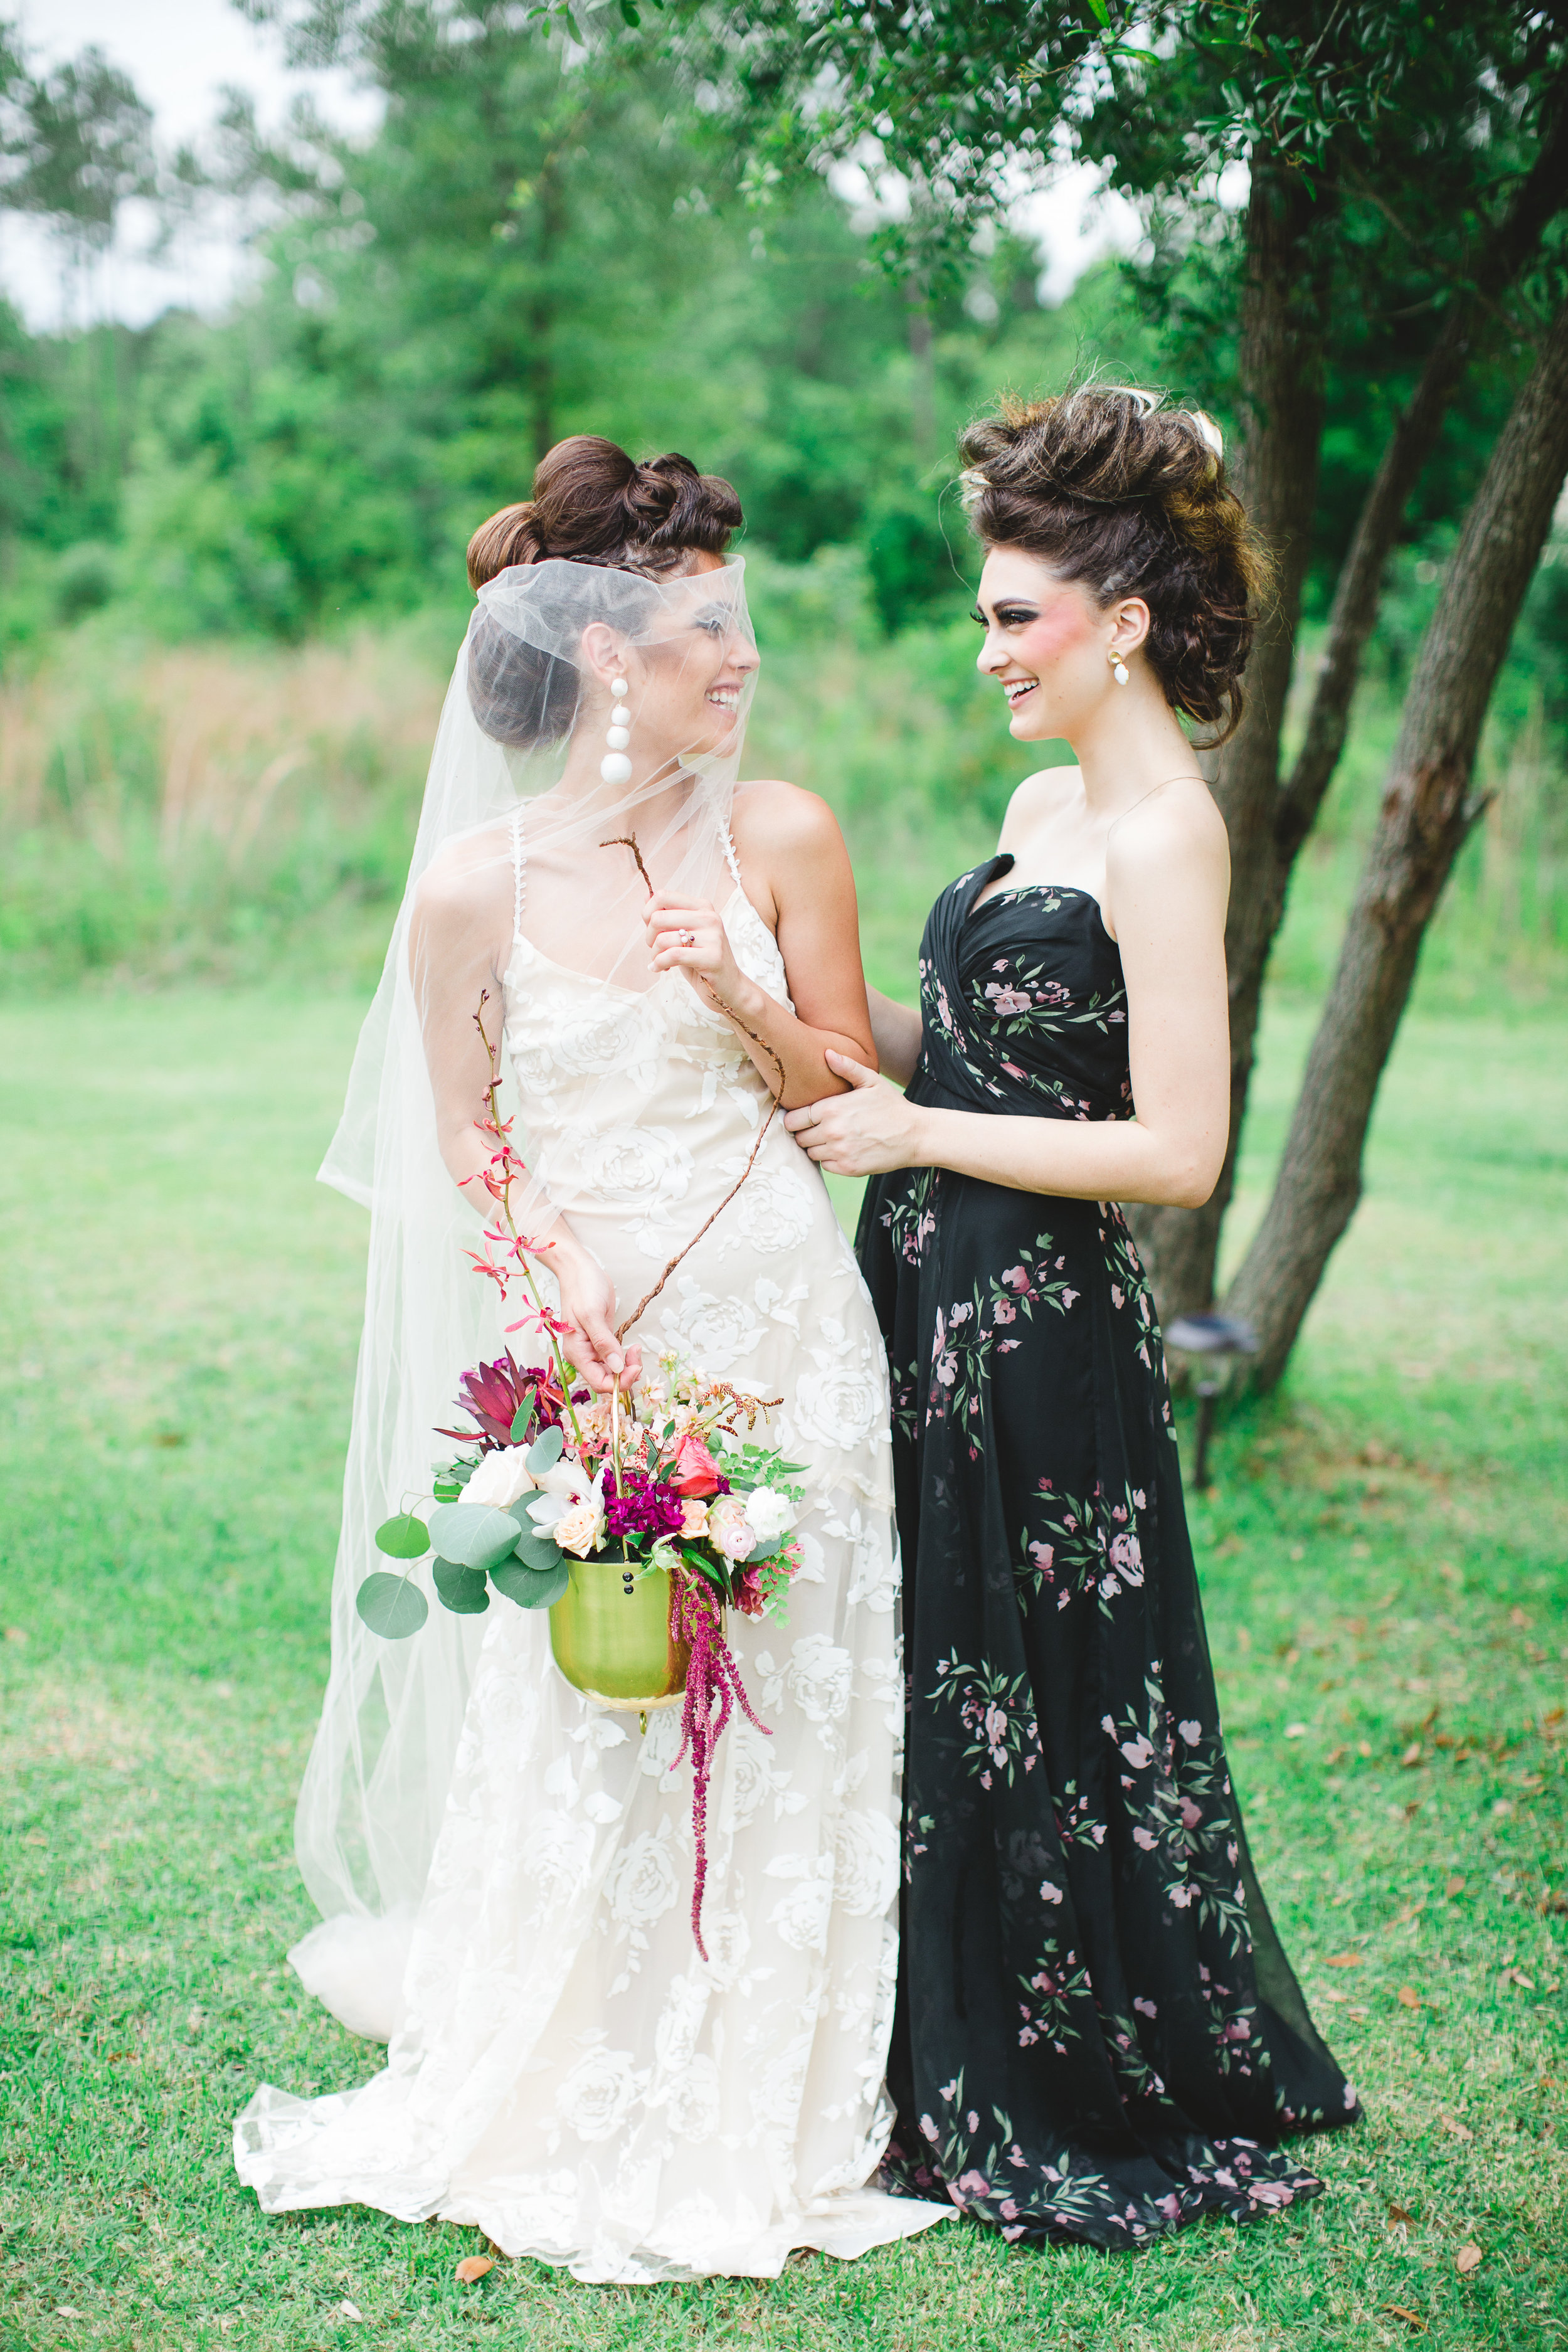 izzy-hudgins-photography-emily-burton-designs-ivory-and-beau-bridal-boutique-daughters-of-simone-sonje-jenny-yoo-bridesmaids-glamping-wedding-boho-wedding-outdoor-wedding-coldwater-gardens-wedding-savannah-bridal-boutique-savannah-wedding-planner-18.jpg